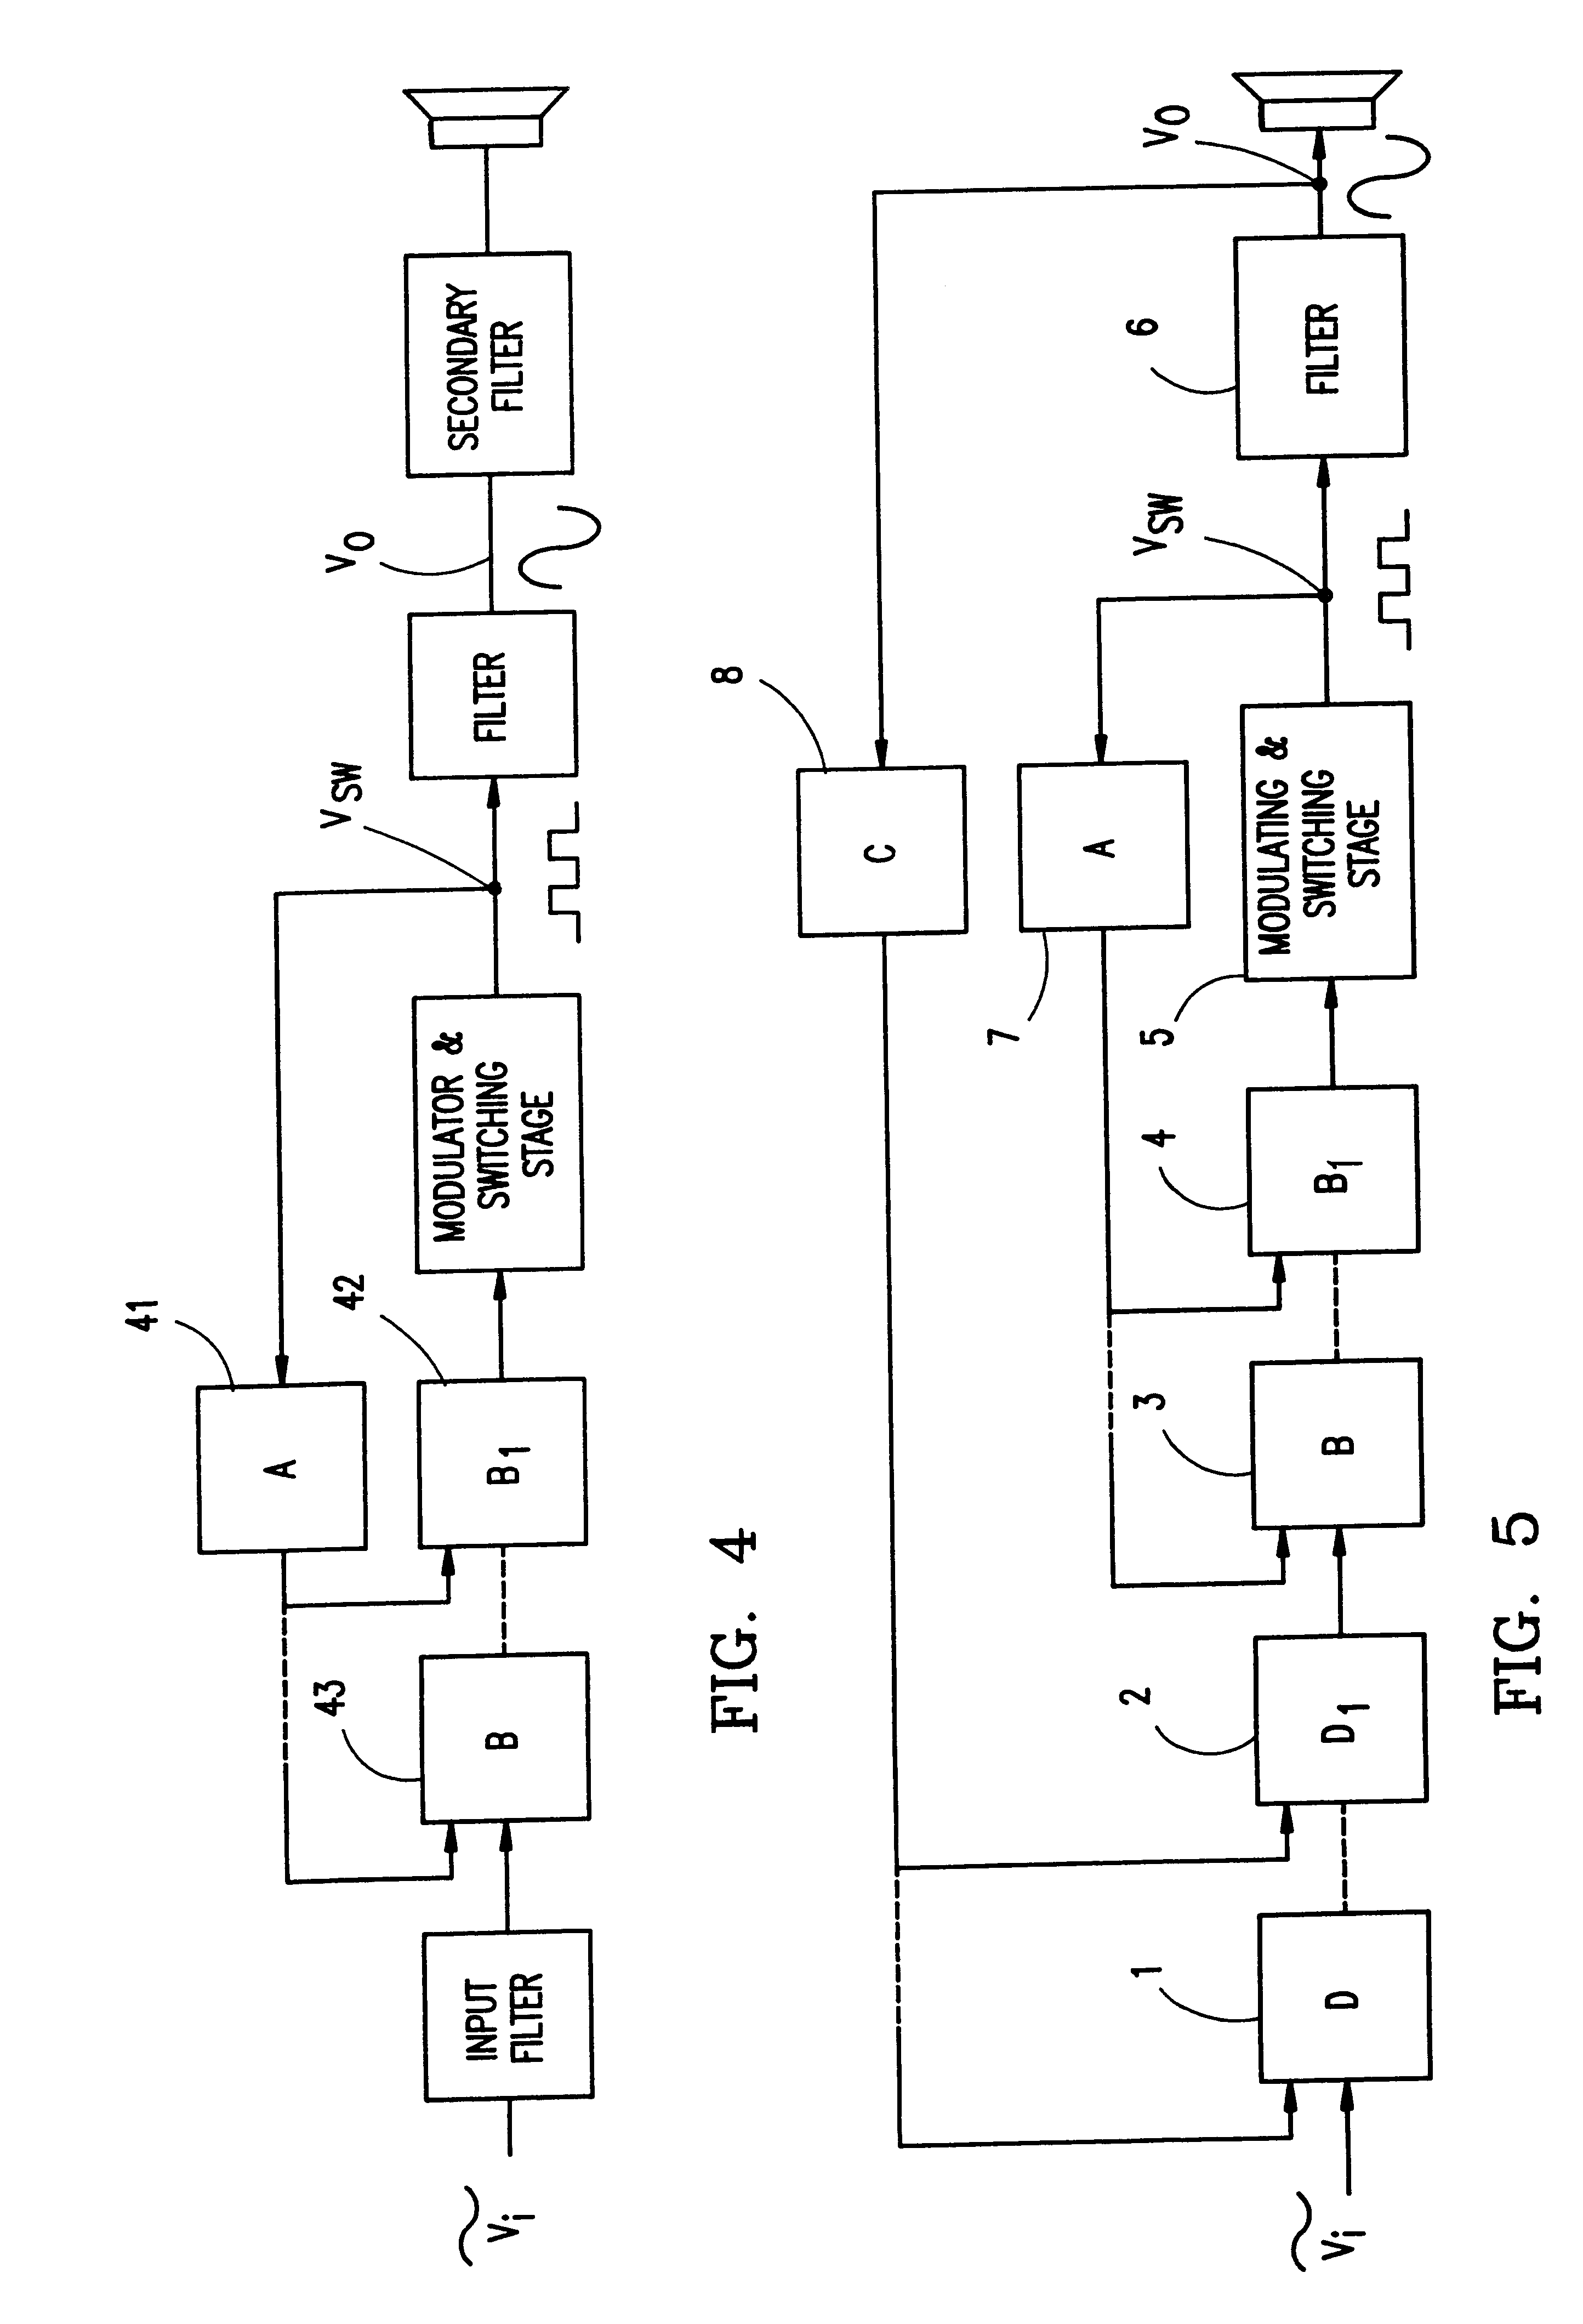 Patent Us6297692 Pulse Modulation Power Amplifier With Enhanced Frequency Hybrid Type Switching Supply Drawing